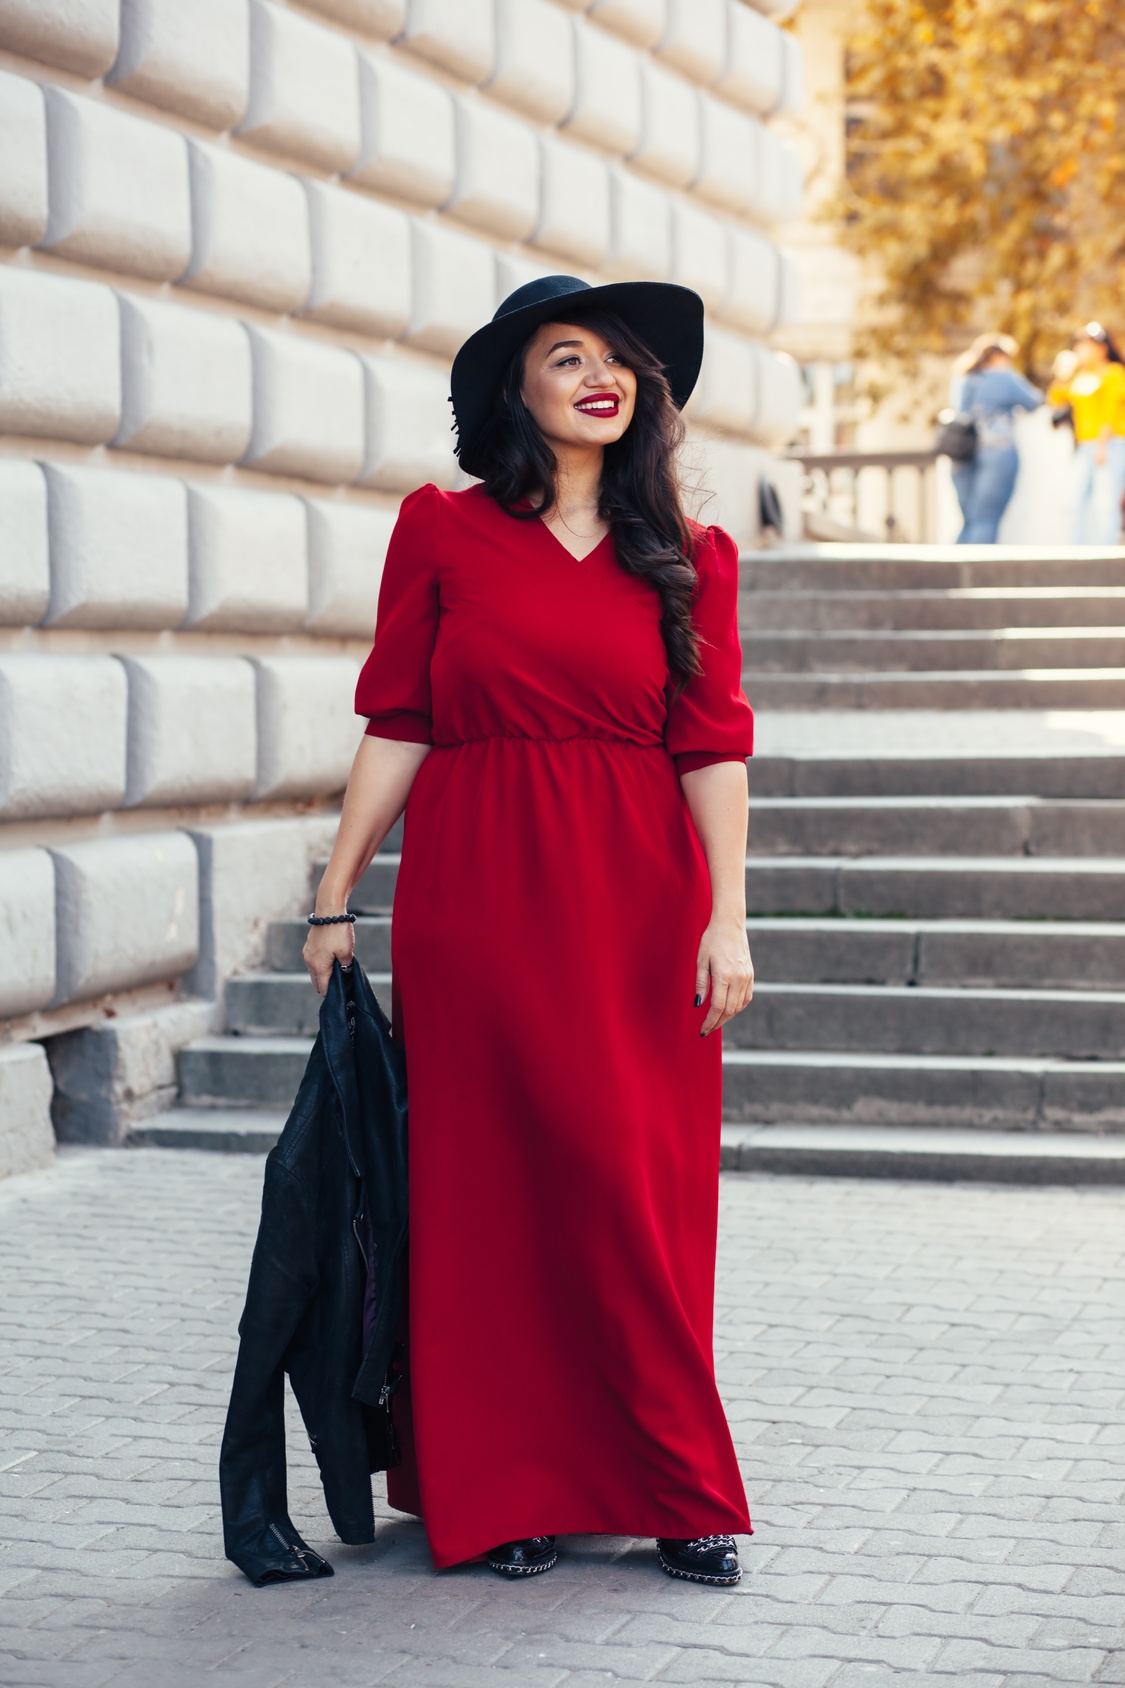 Street fashion, plus size model